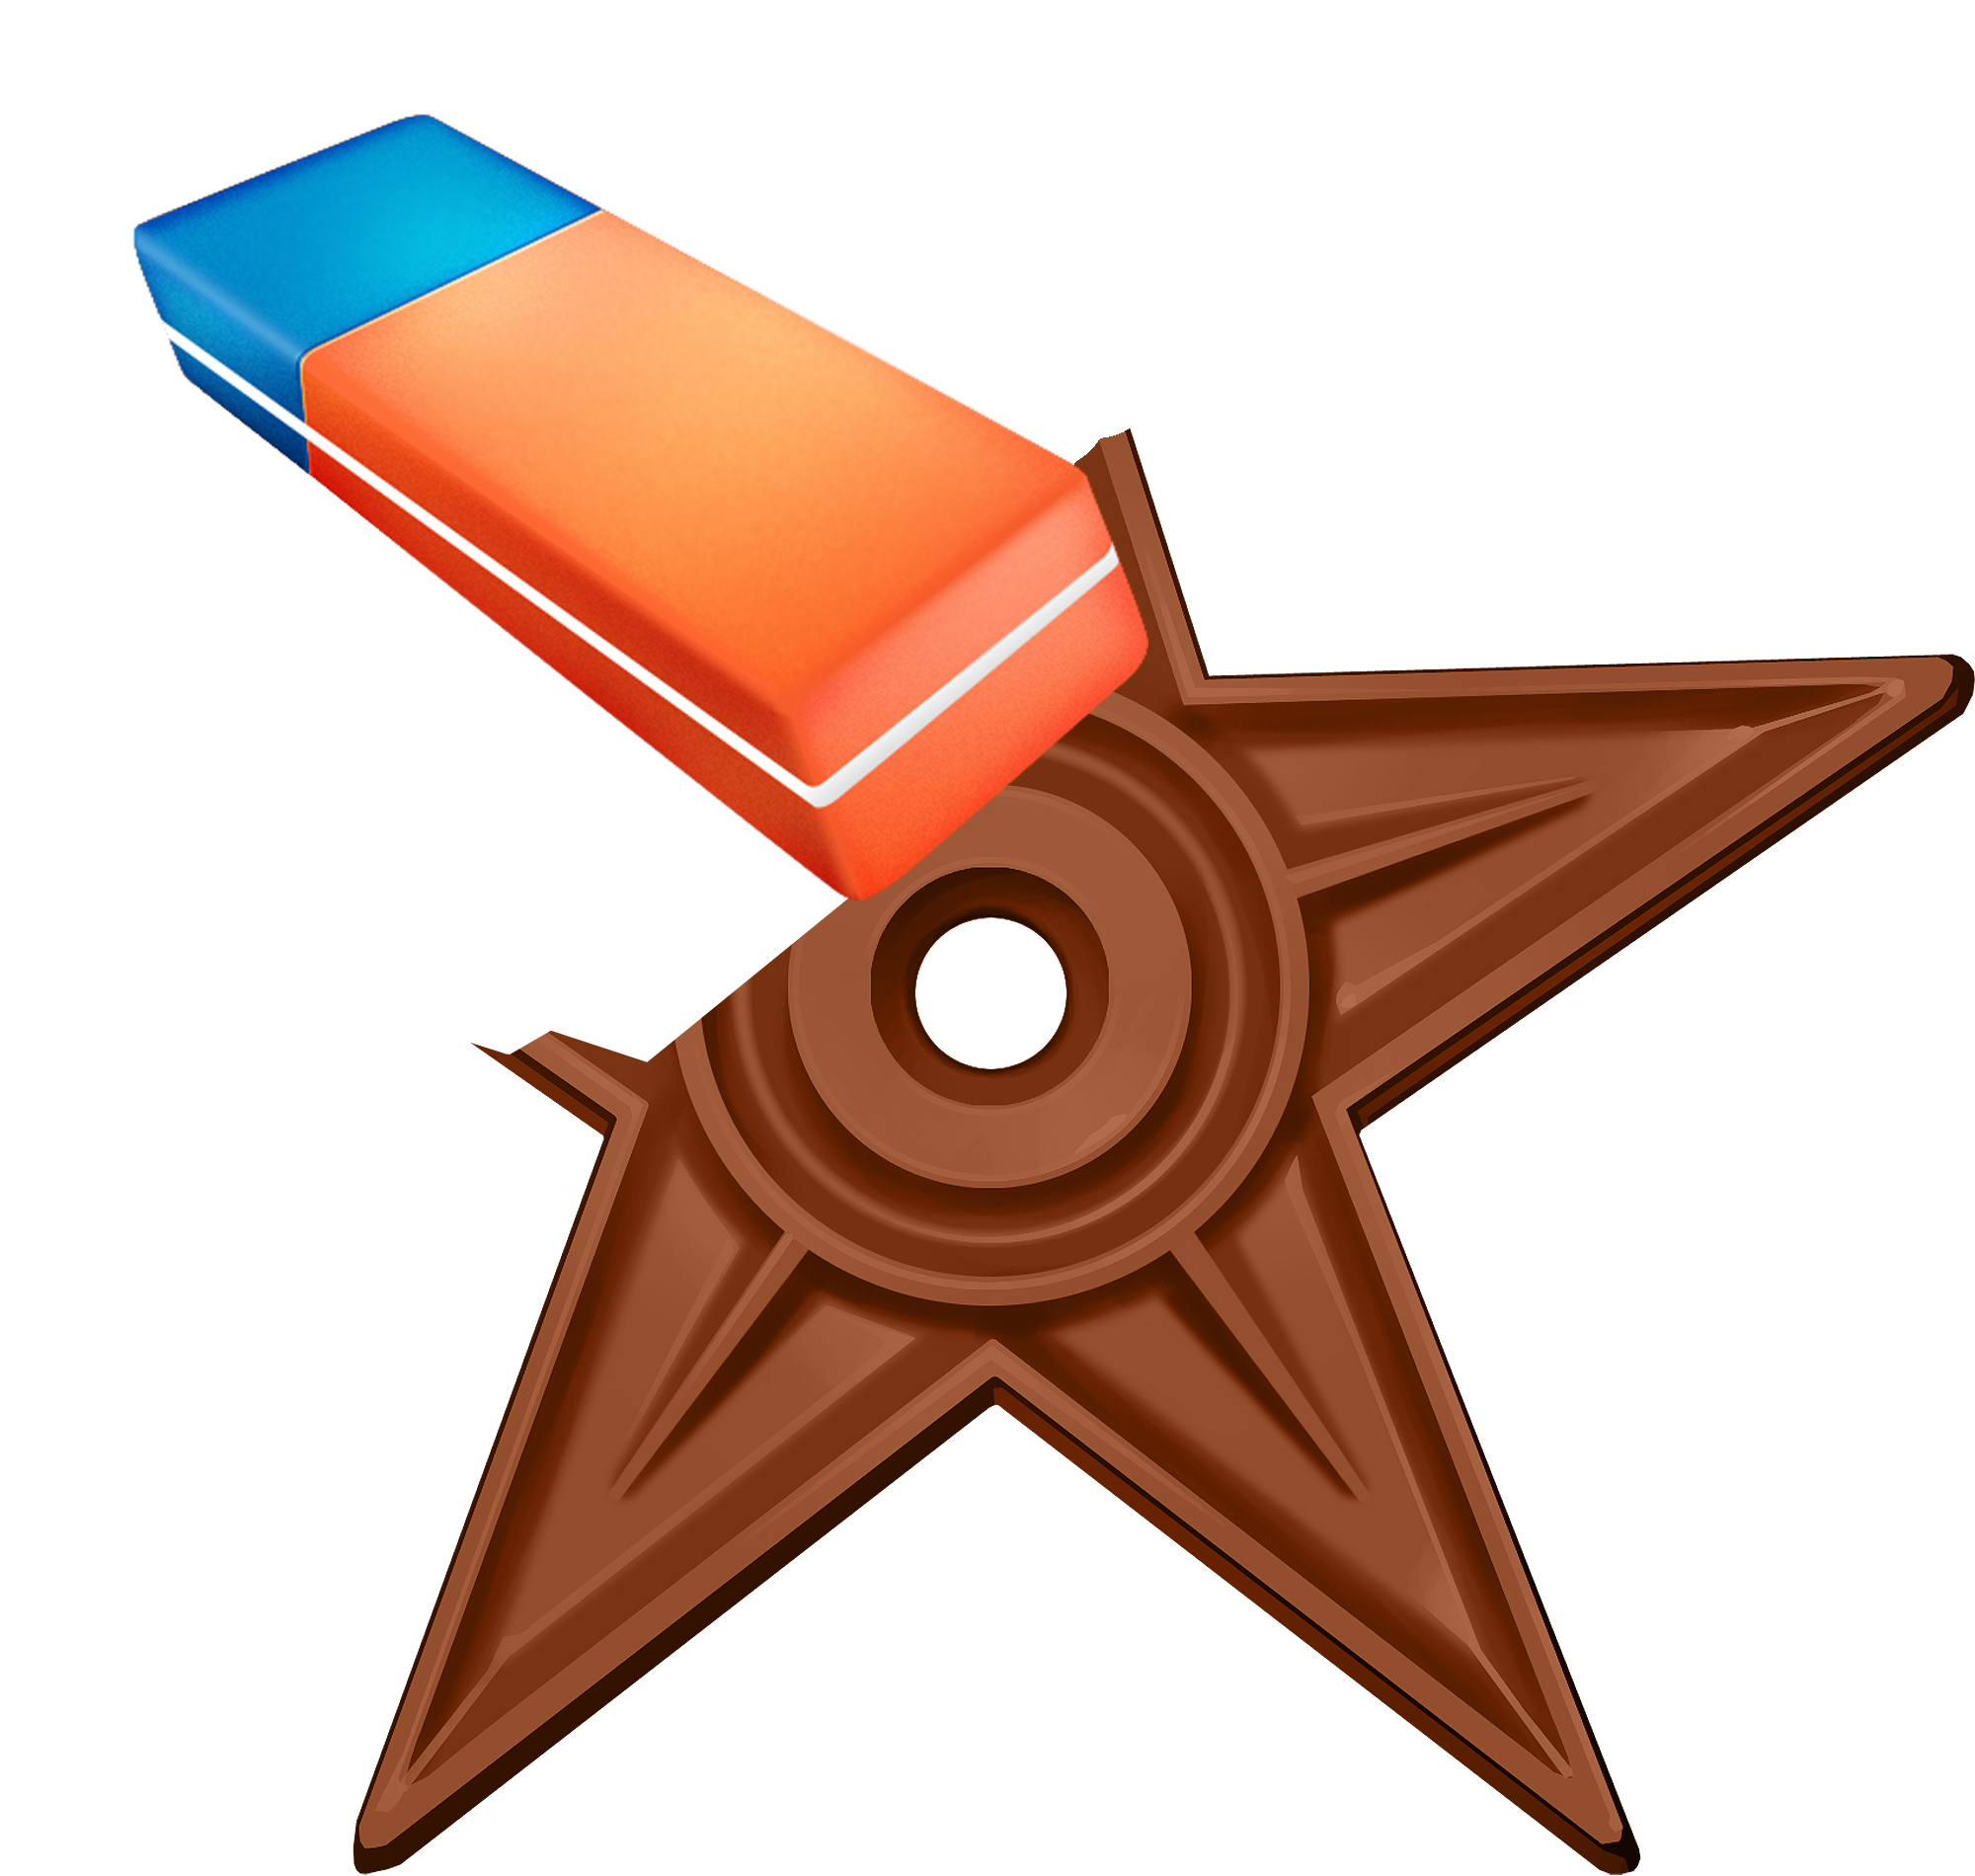 File:Eraser Barnstar Hires png - Wikimedia Commons